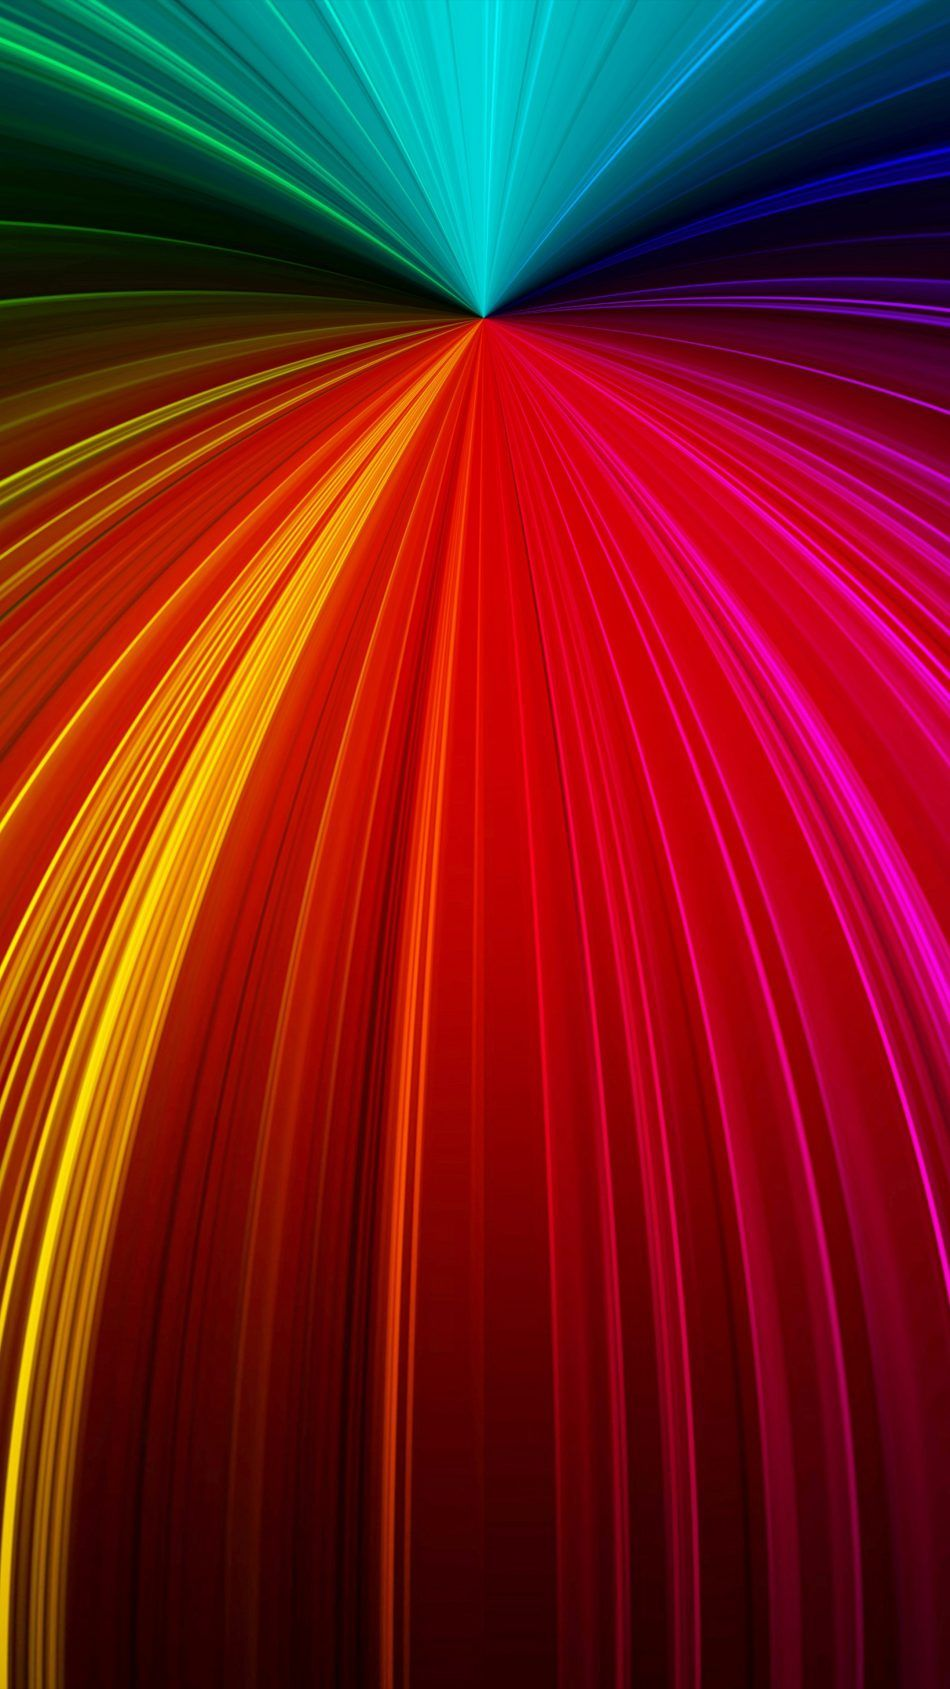 Colorful Rays Fractal Waves 4k Ultra Hd Mobile Wallpaper Abstract Wallpaper Abstract Mobile Wallpaper